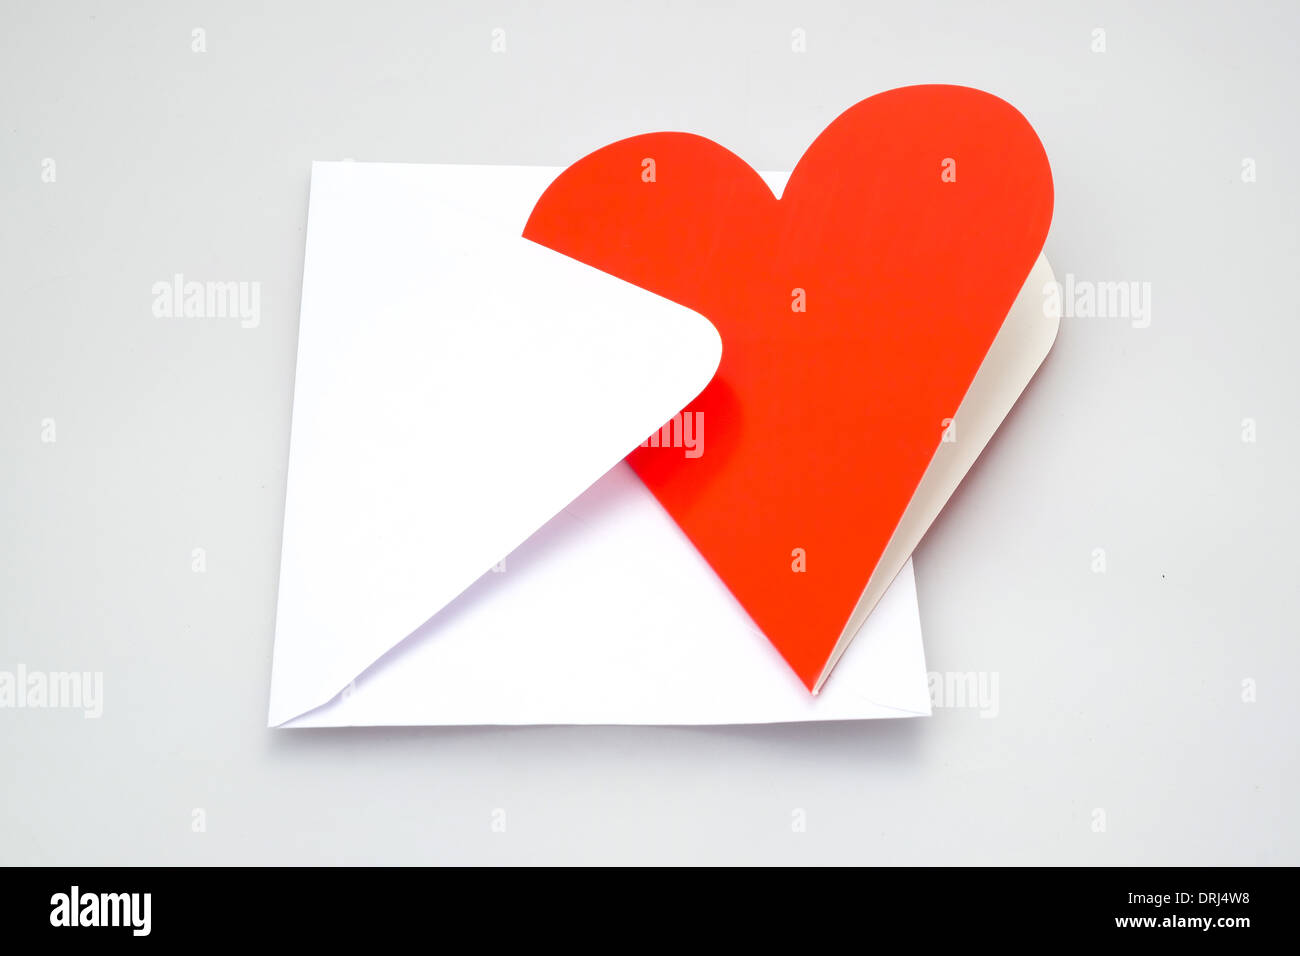 Perfect for a love letter, a heart shaped greeting card and envelope - studio shot with a white background - Stock Image